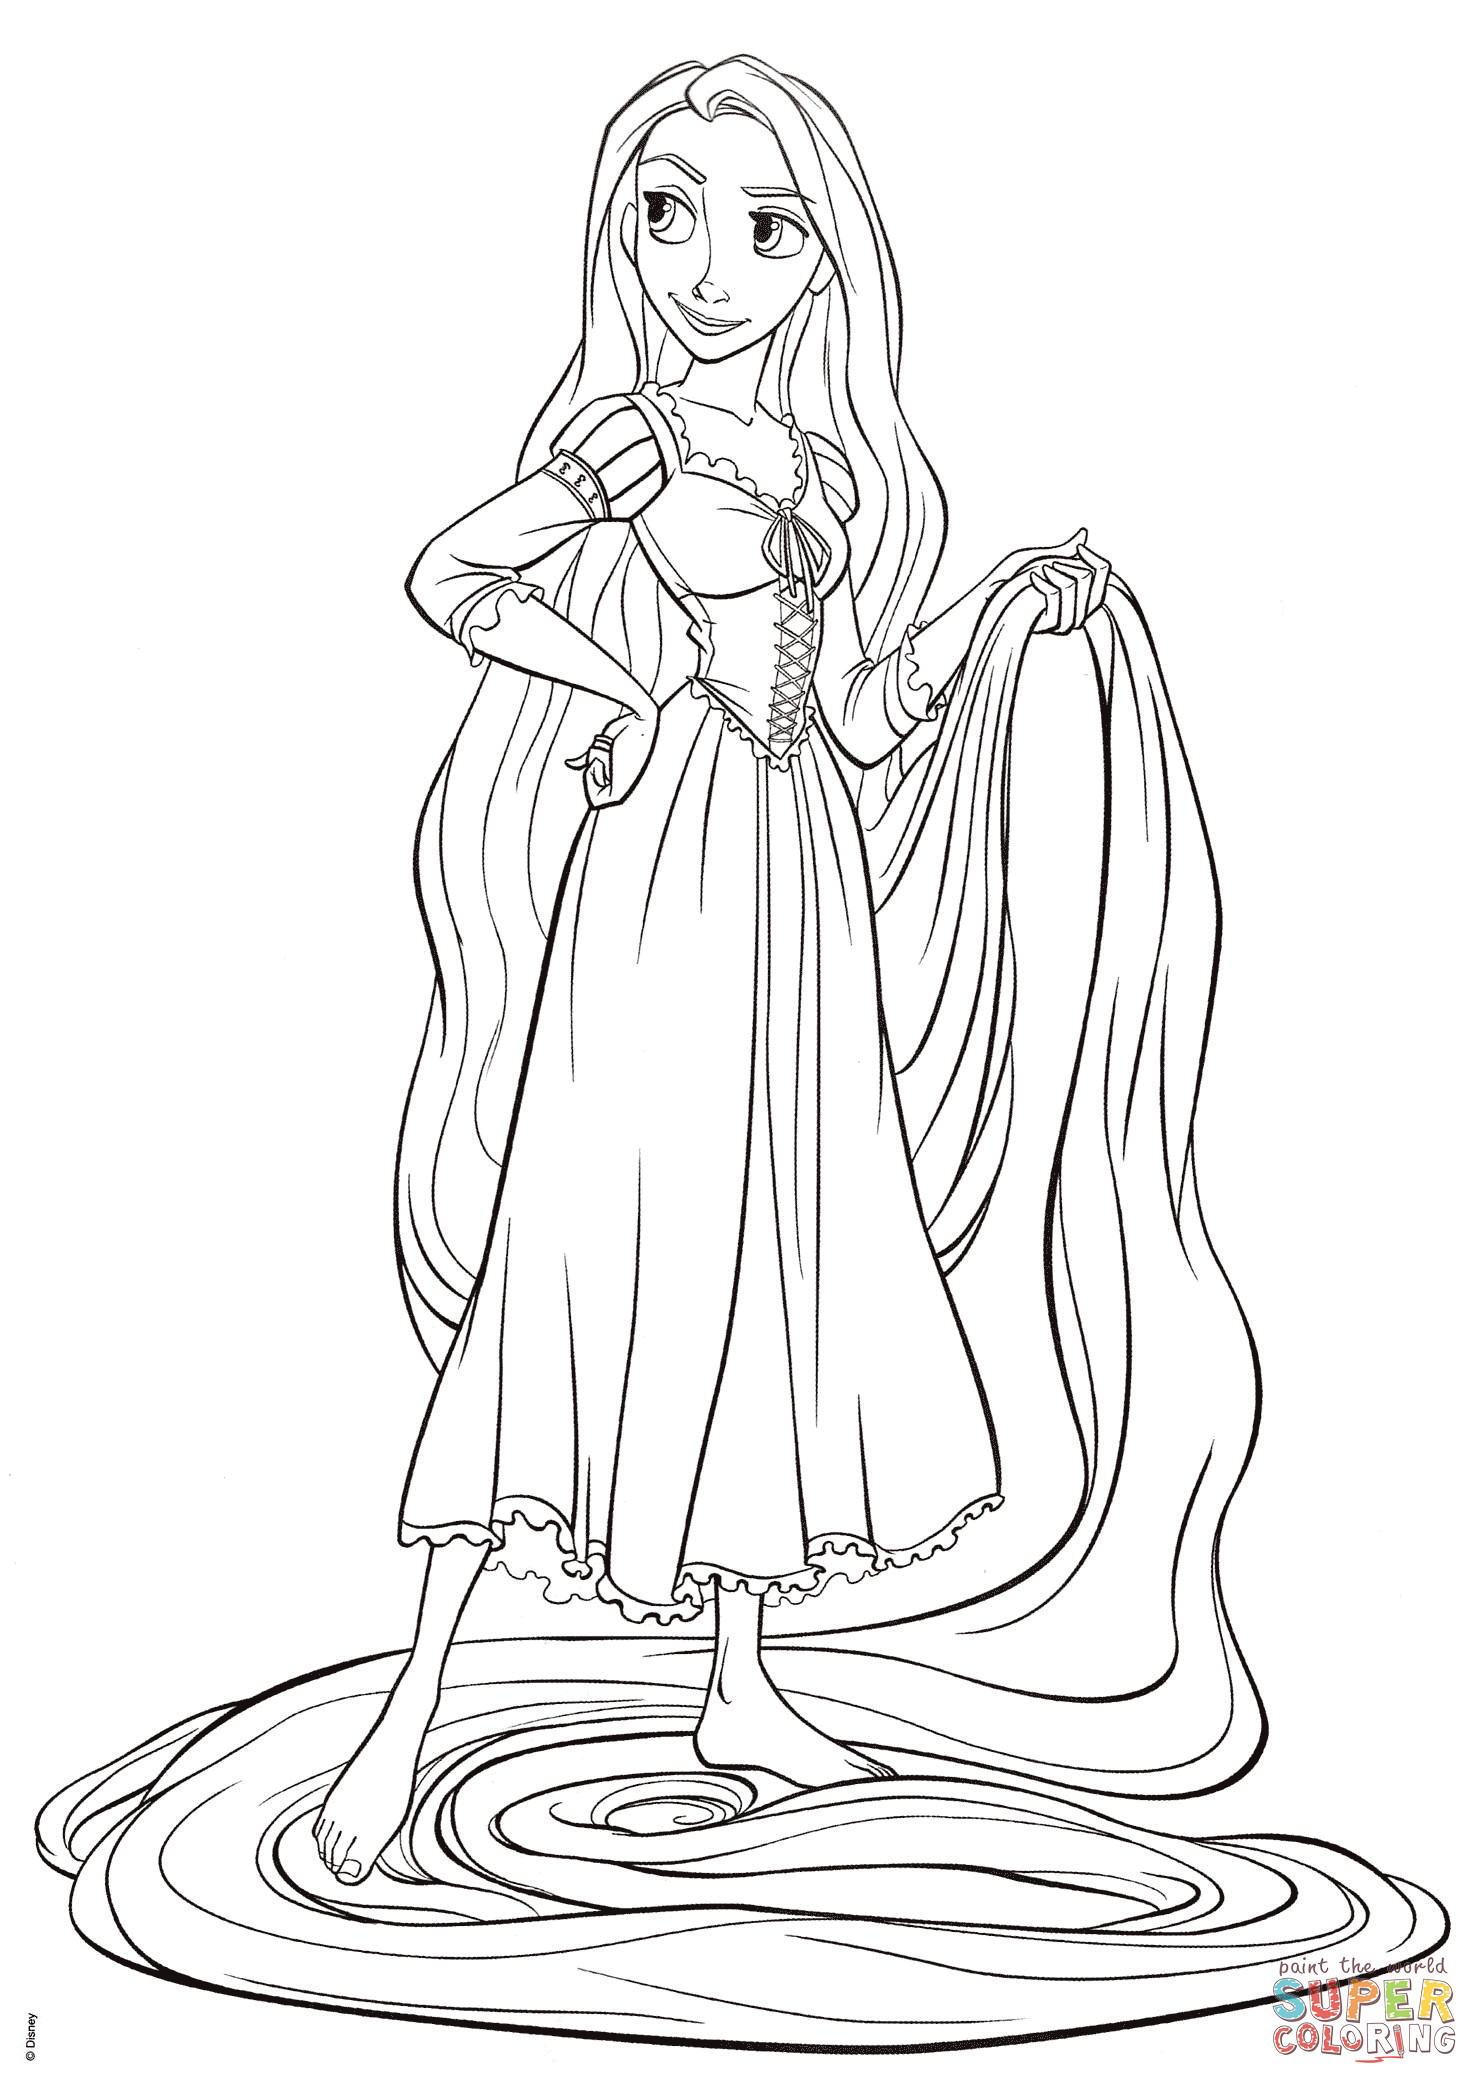 Tangled Coloring Pages For Girls  Rapunzel from Tangled coloring page